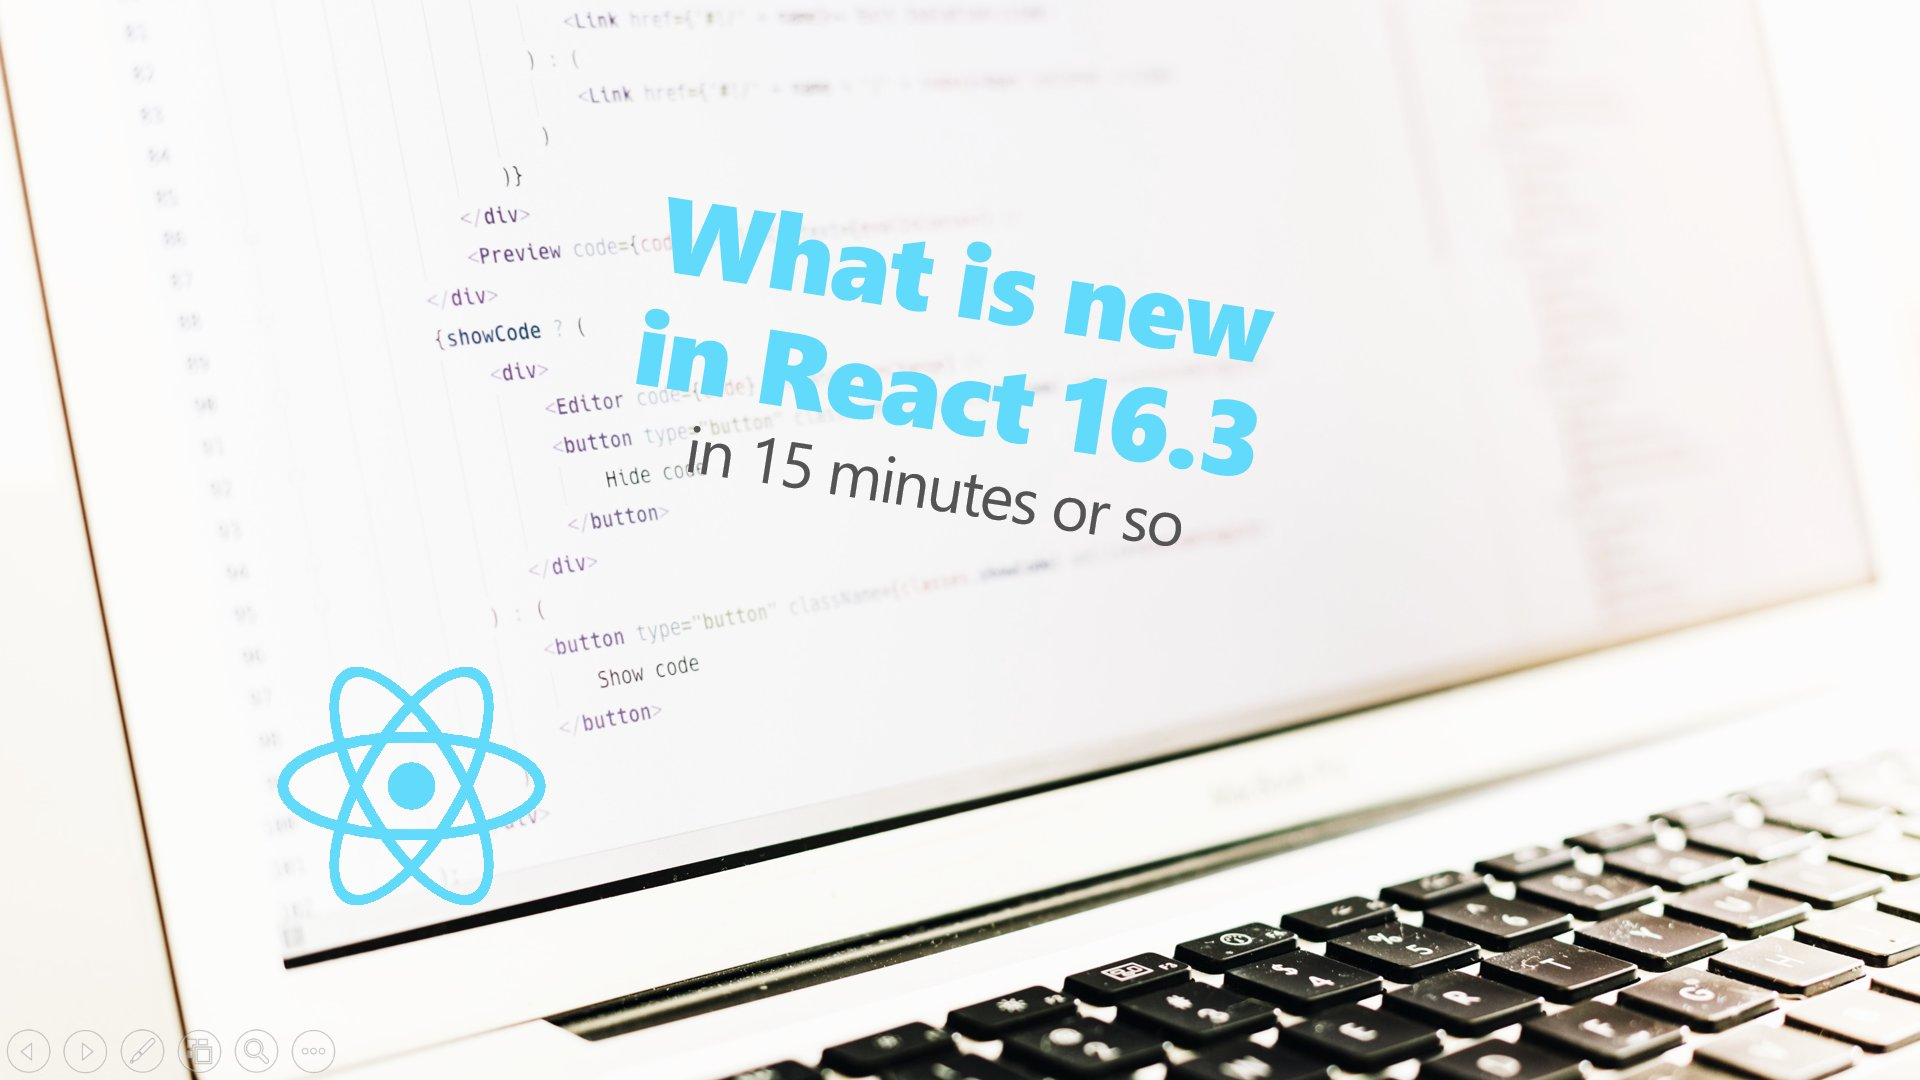 What is new in React 16.3 in 15 minutes or so